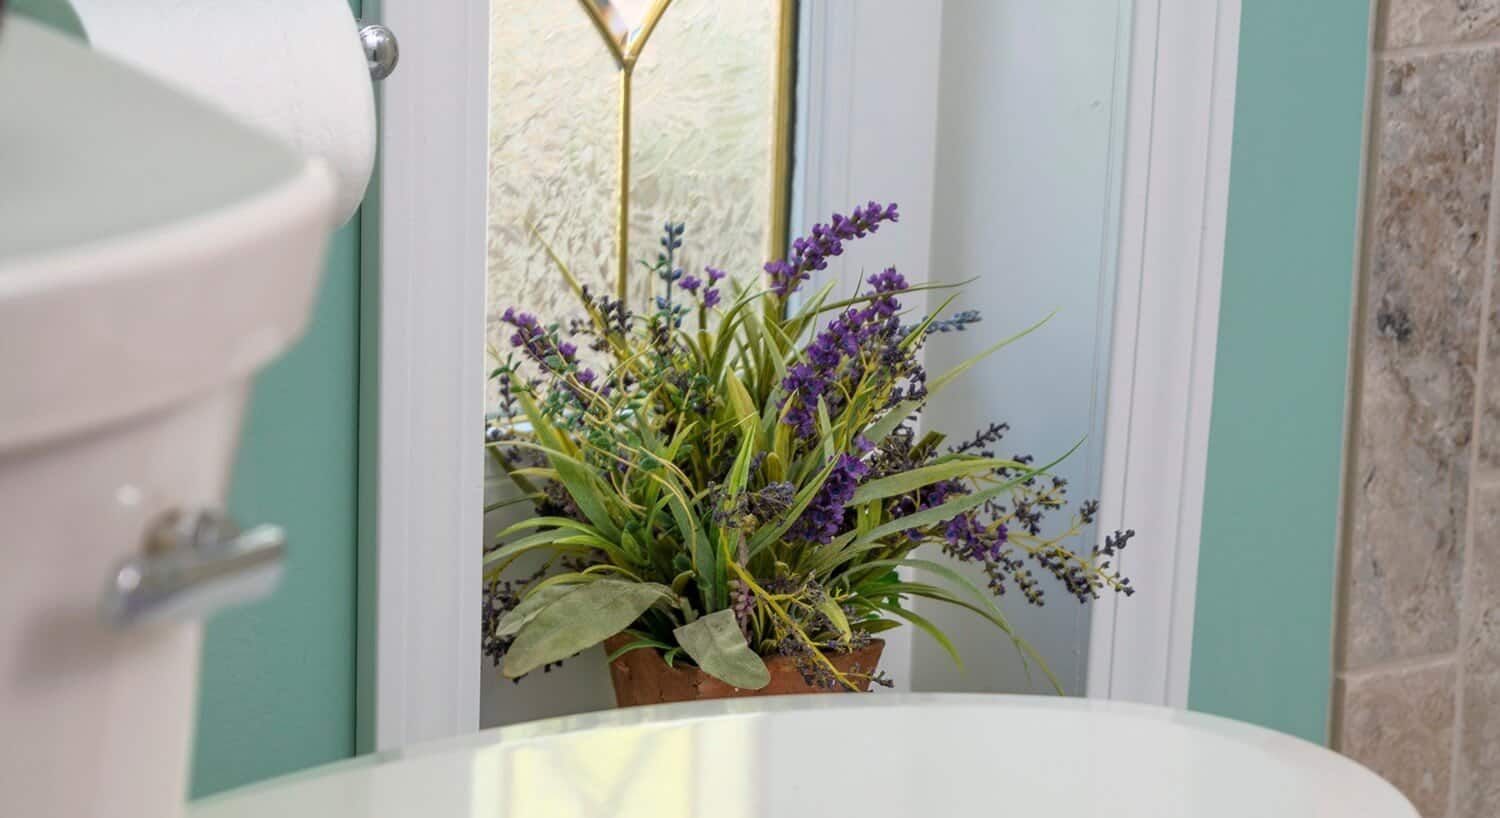 Potted lavender plant in bathroom window.